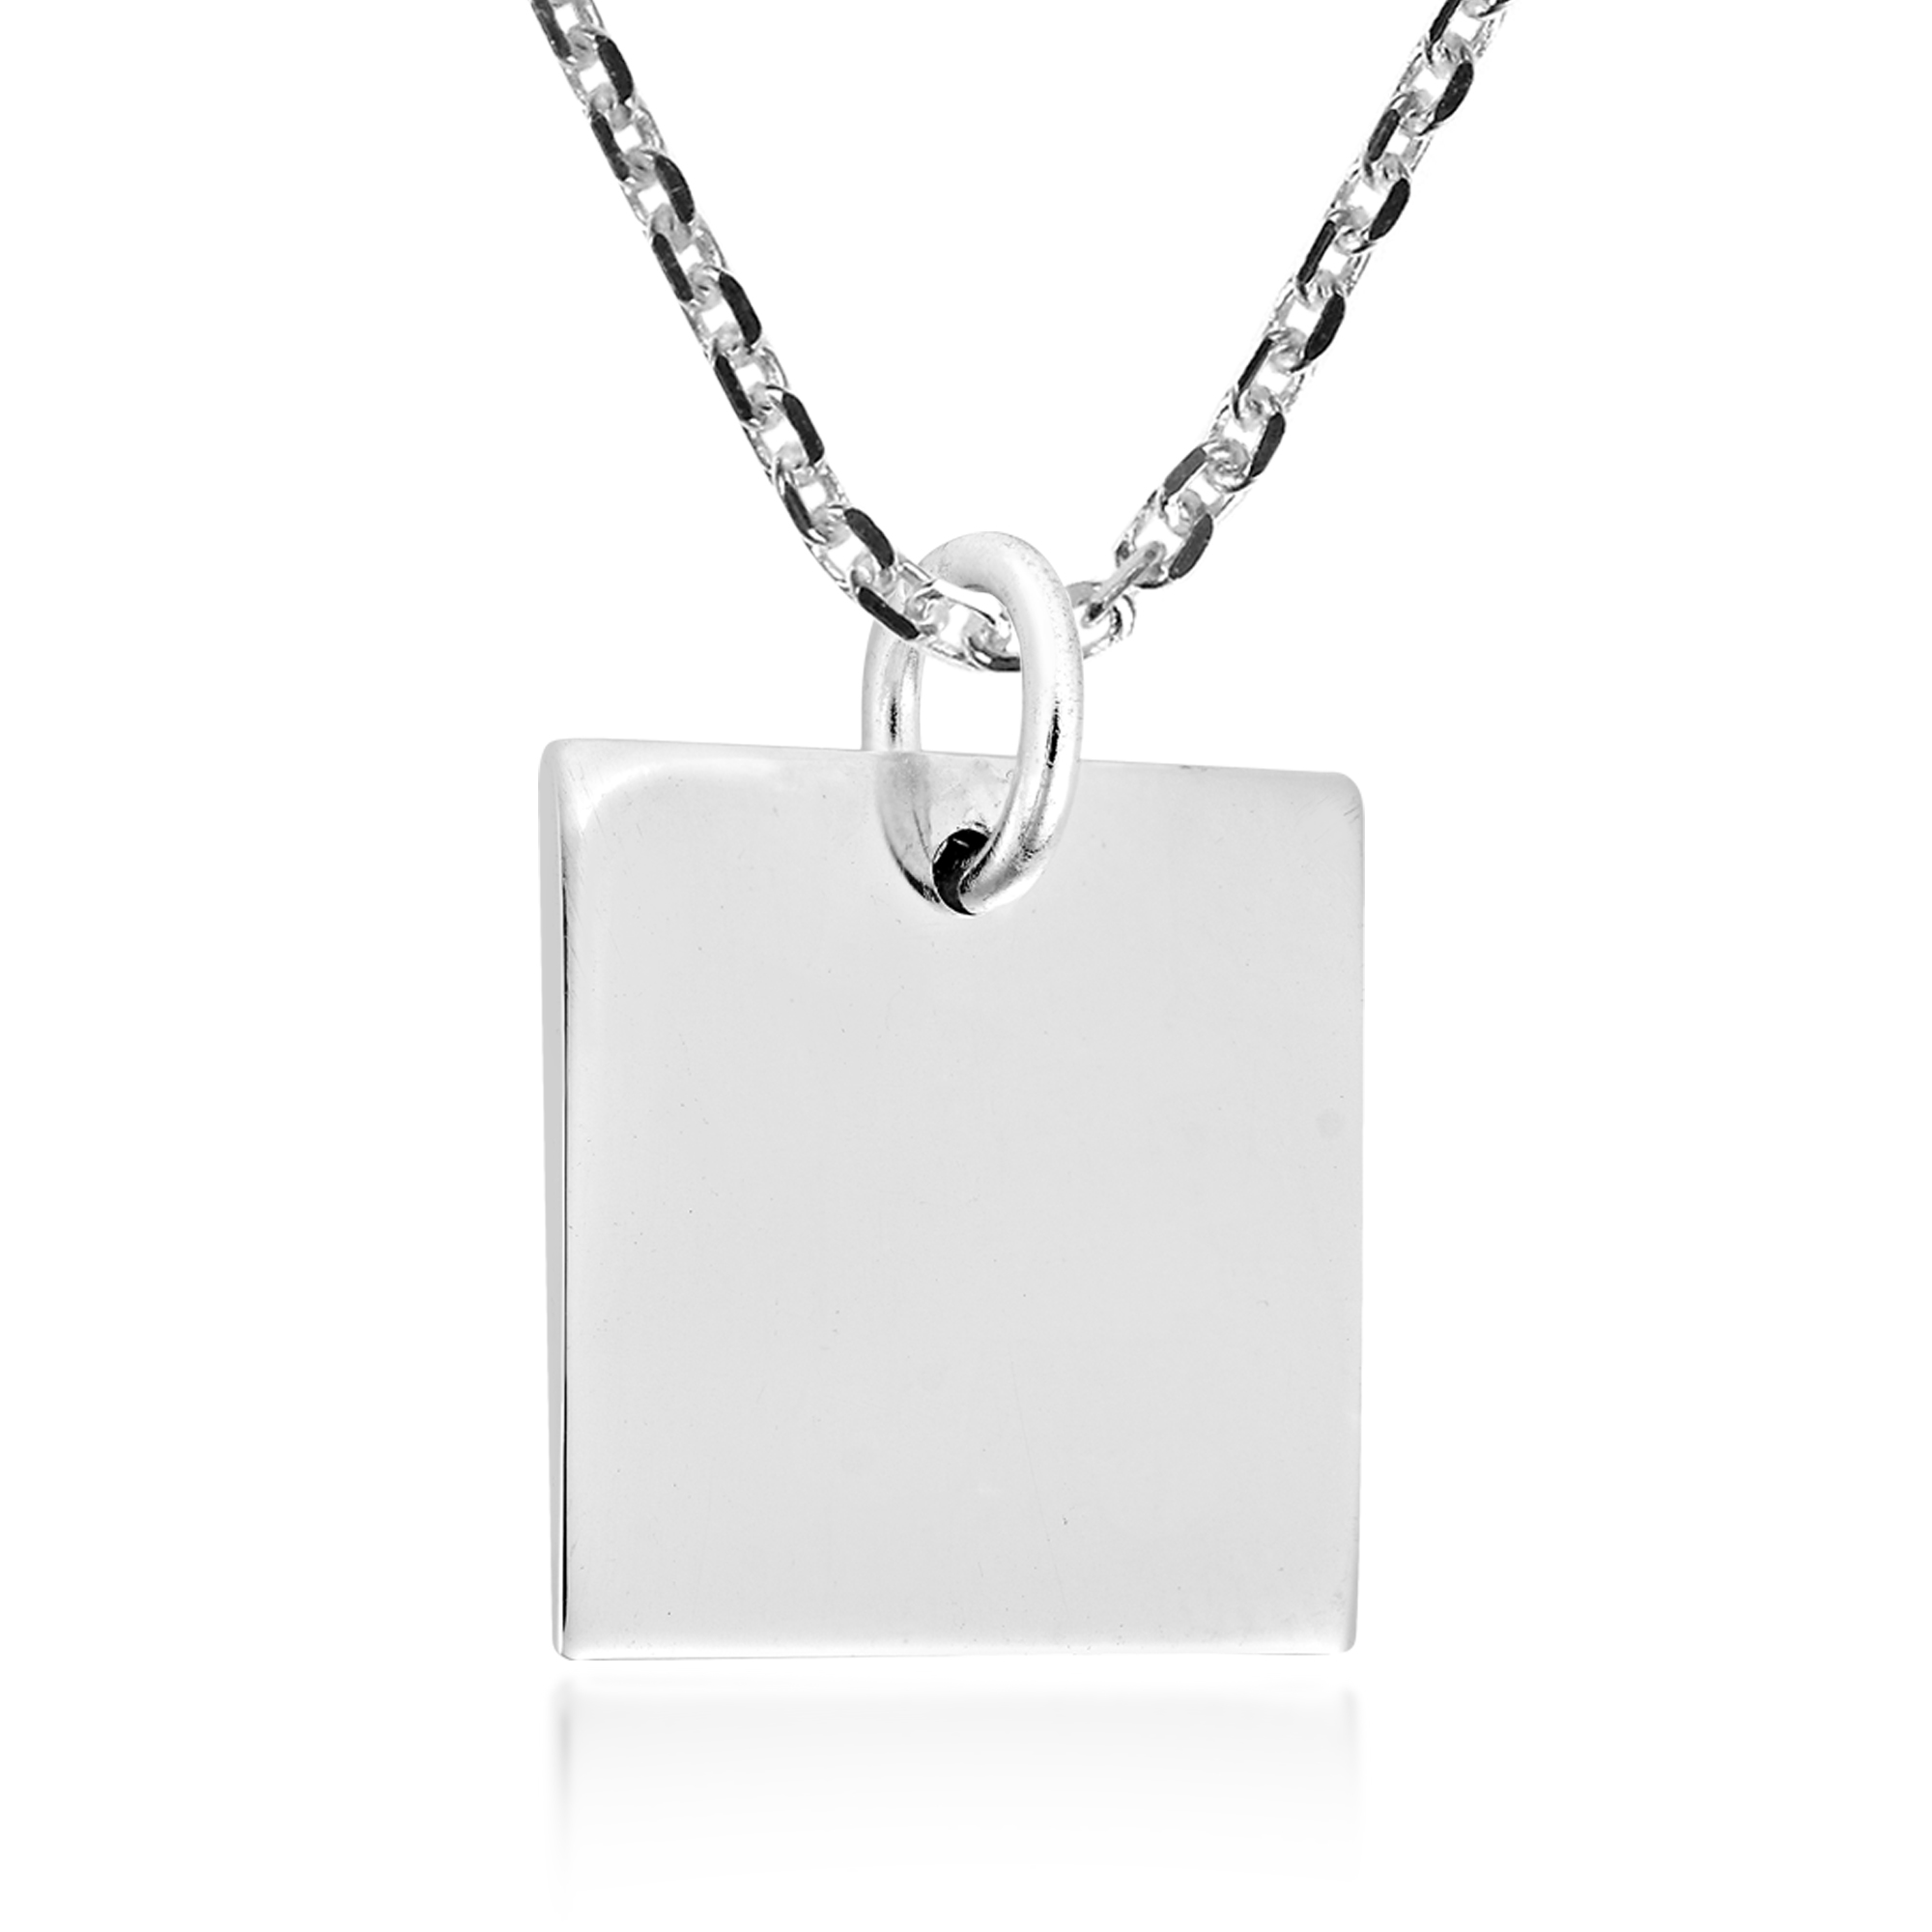 jojojewellery of silver by terzza handmade copy jewellery products elizabeth pendant